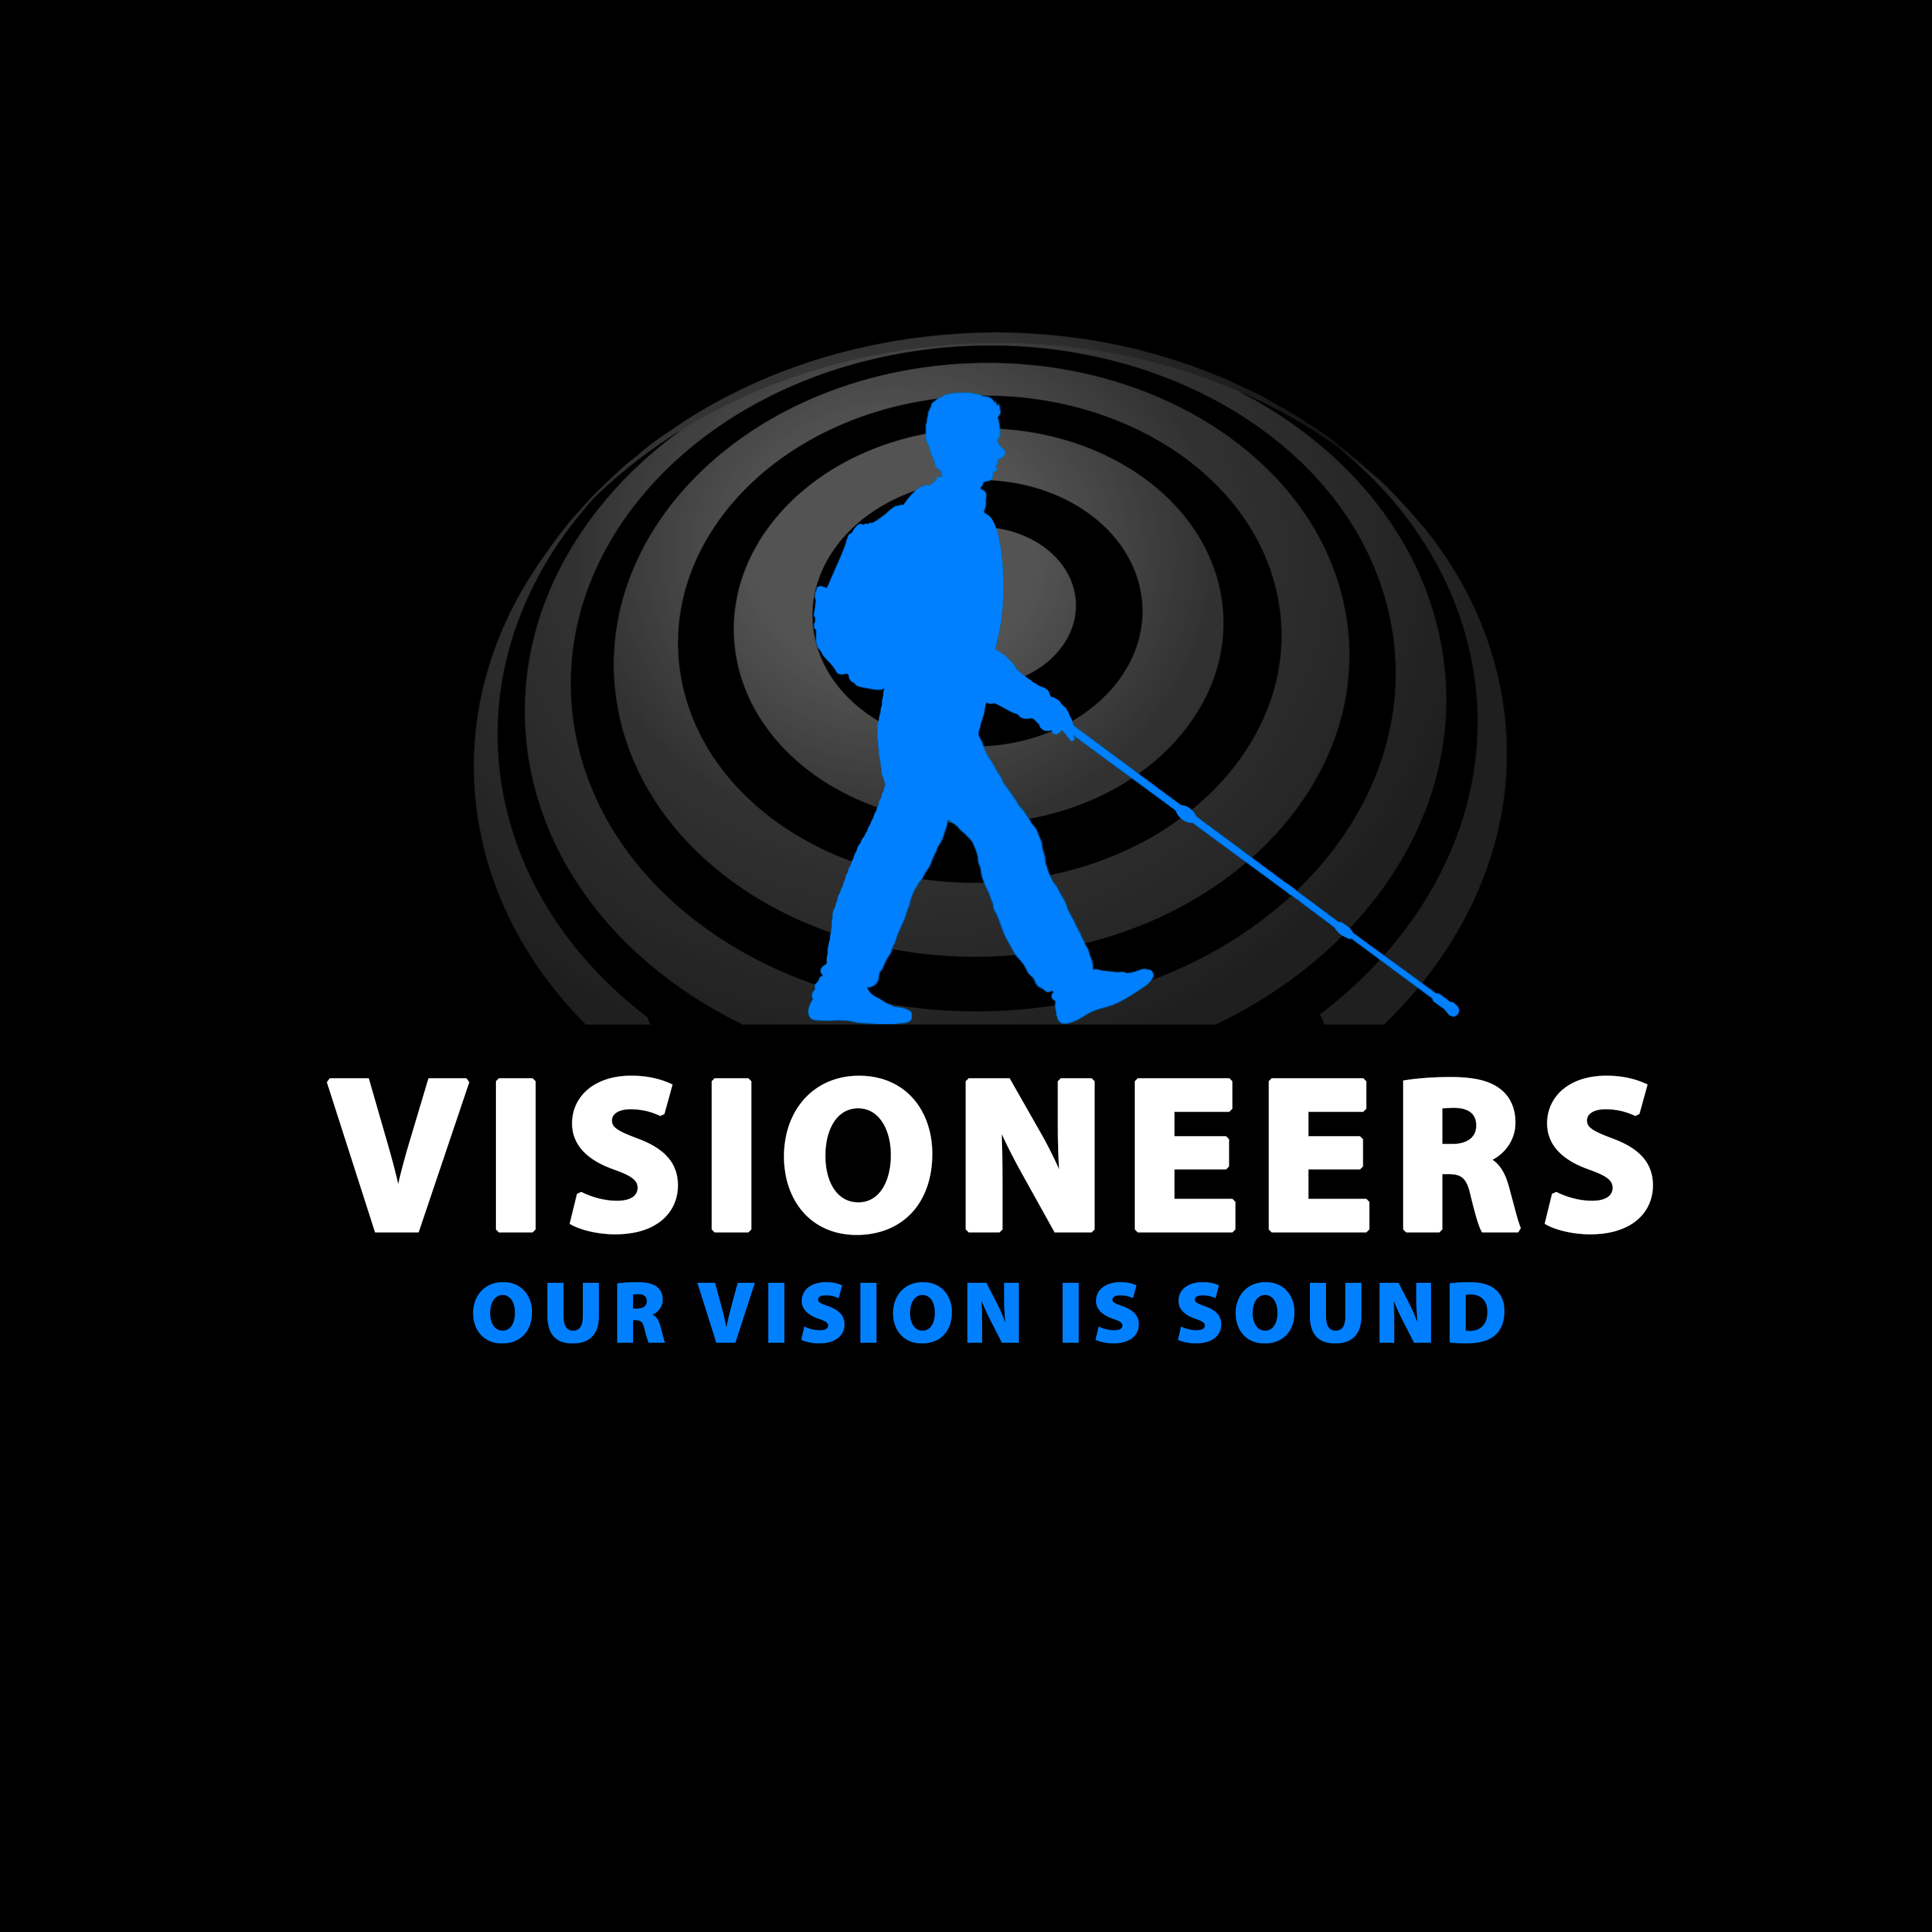 Visioneers 16. Same as previous panel but with Daniel silhouette and Our Vision Is Sound in blue.